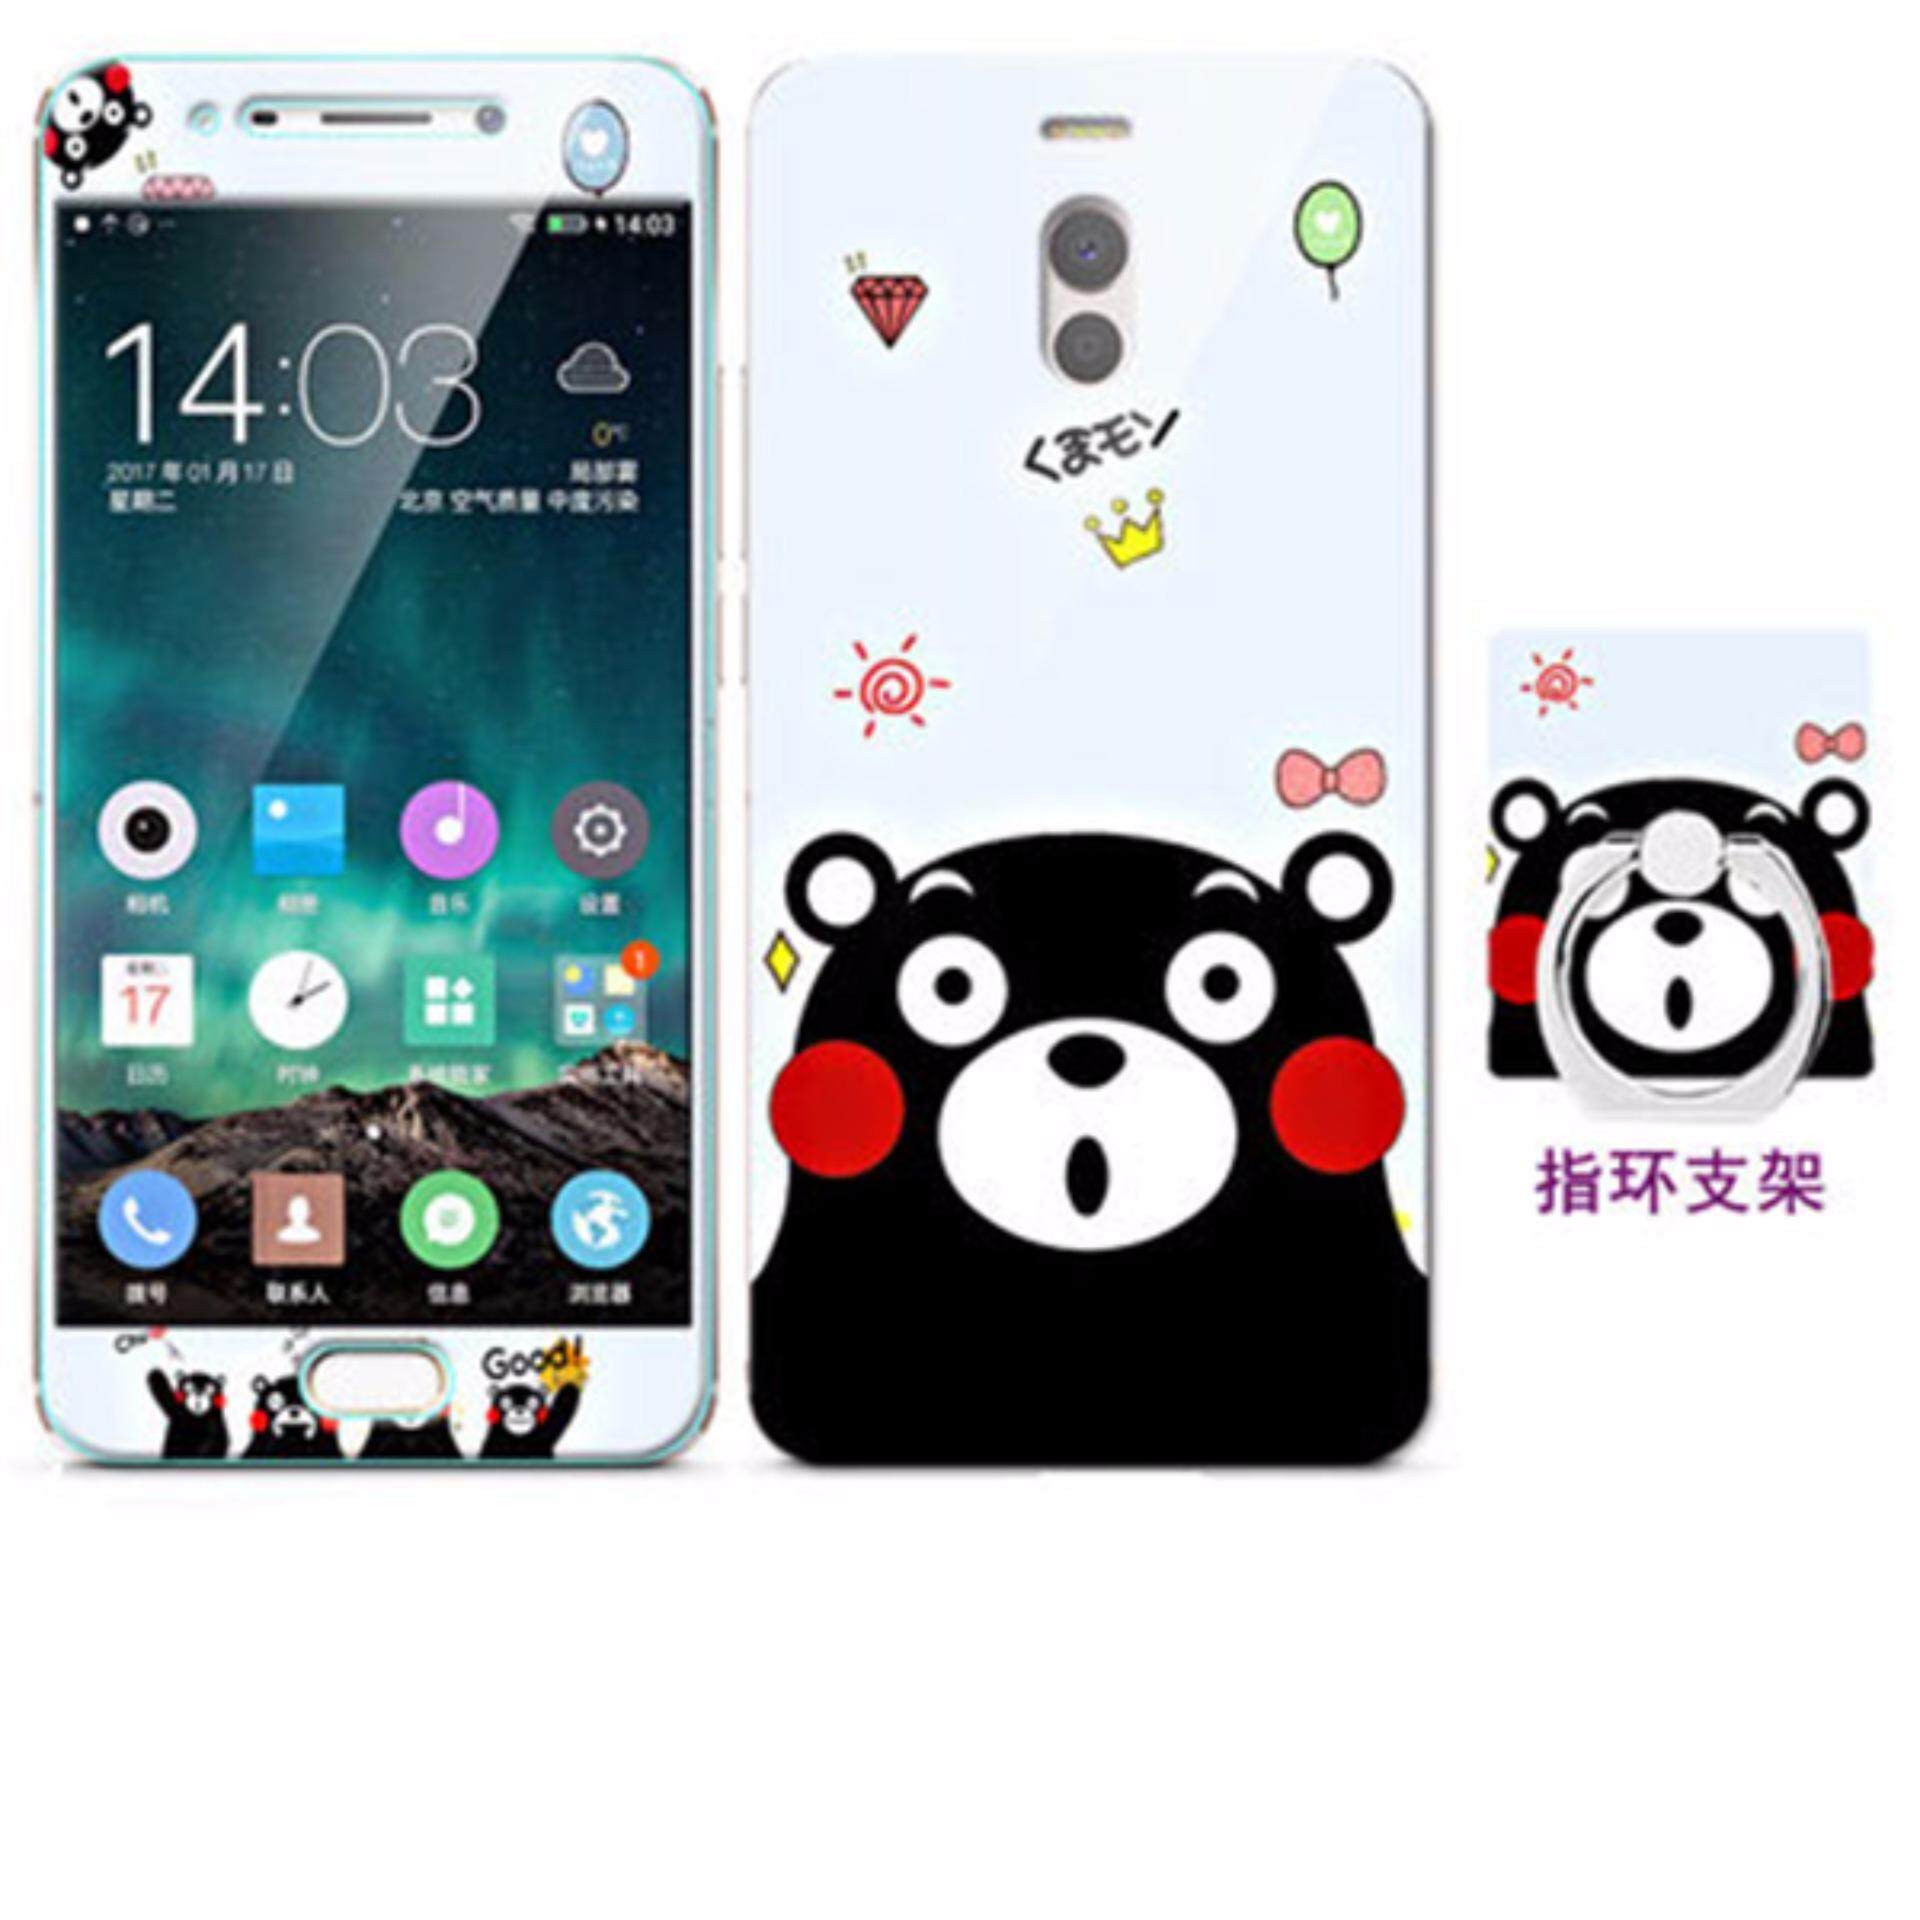 ... Front+Back Full Case Cover Color Tempered GlassCase For Xiaomi Redmi 4A. Source · inch Screen Protector Film (Multicolor-8) - intl. Source . Source ·